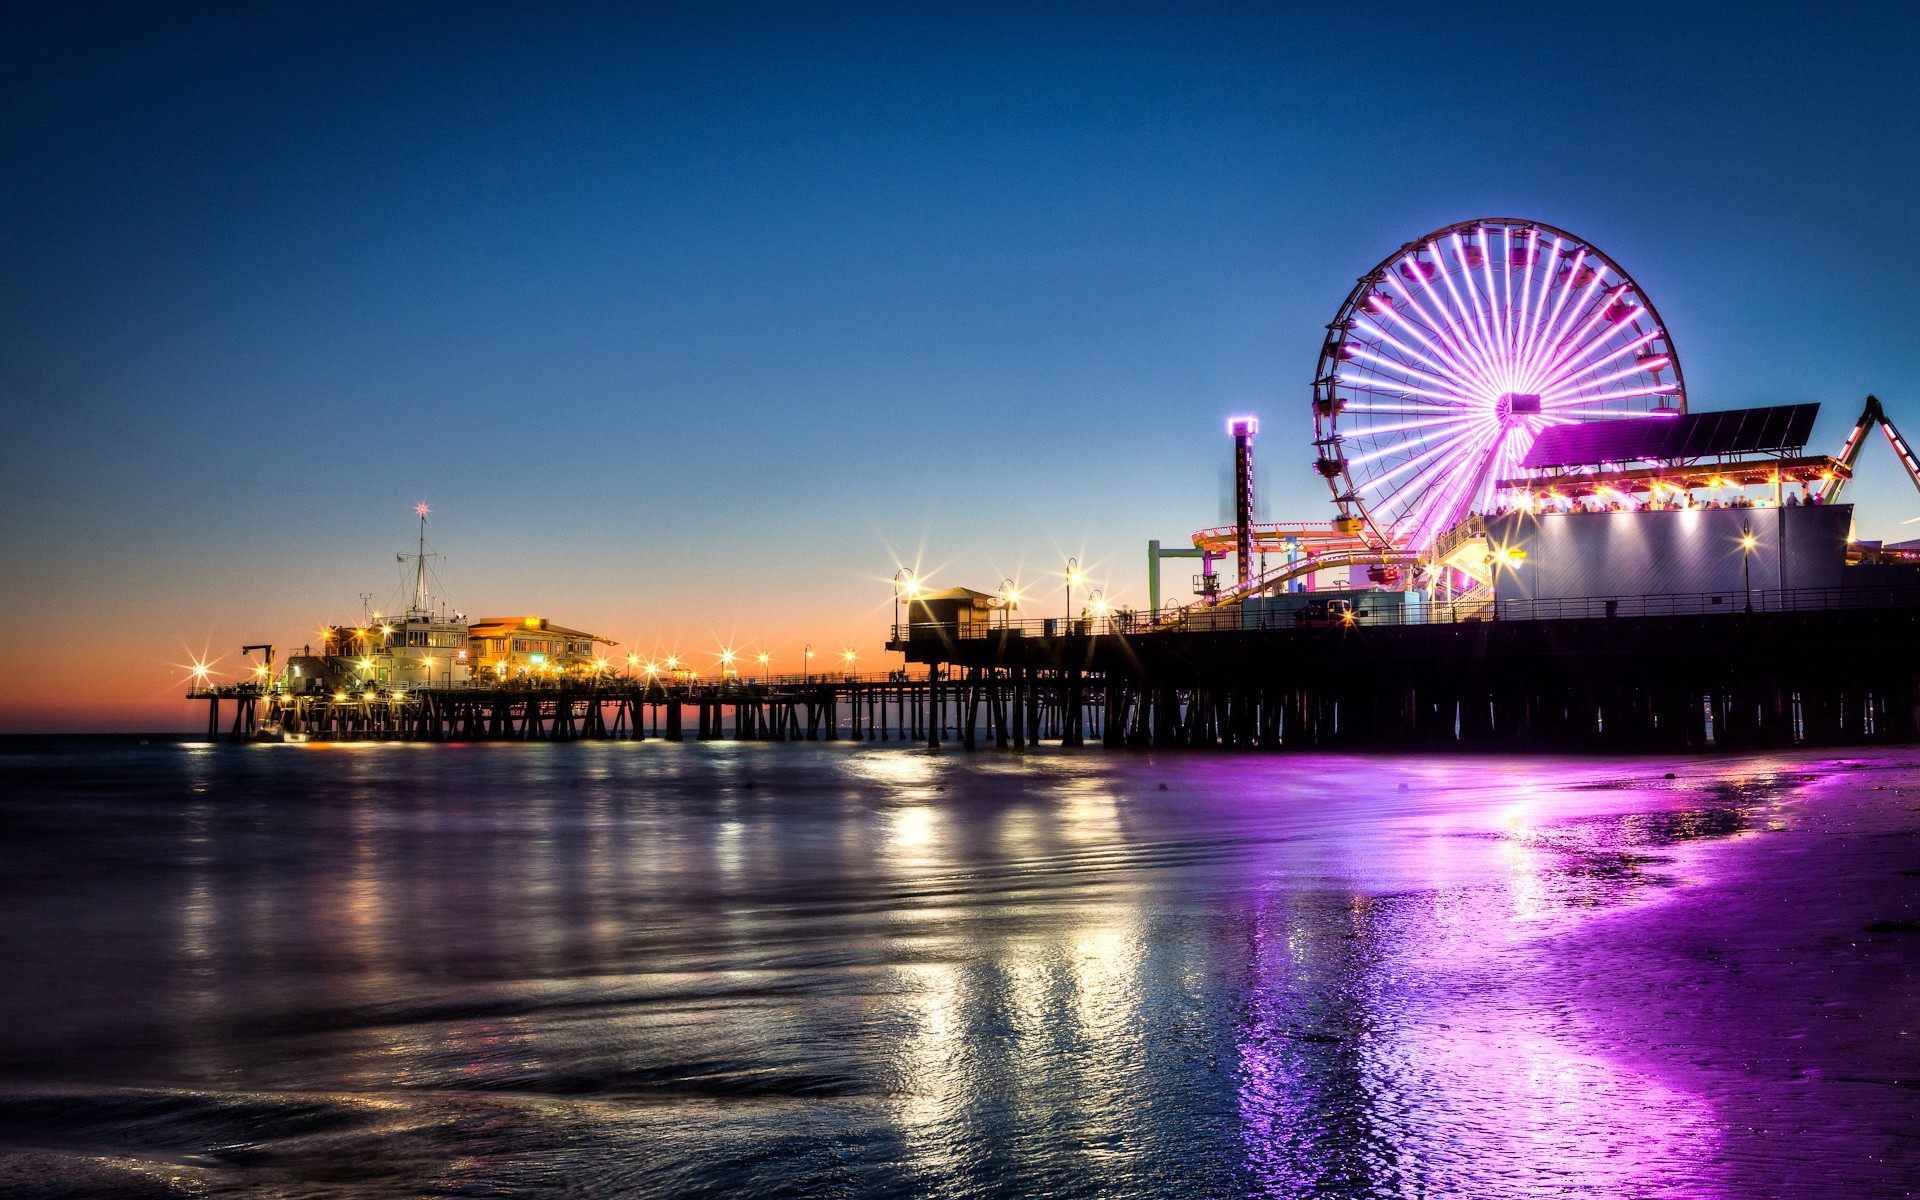 Los Angeles beach at night 1920 x 1200 Locality Photography 1920x1200